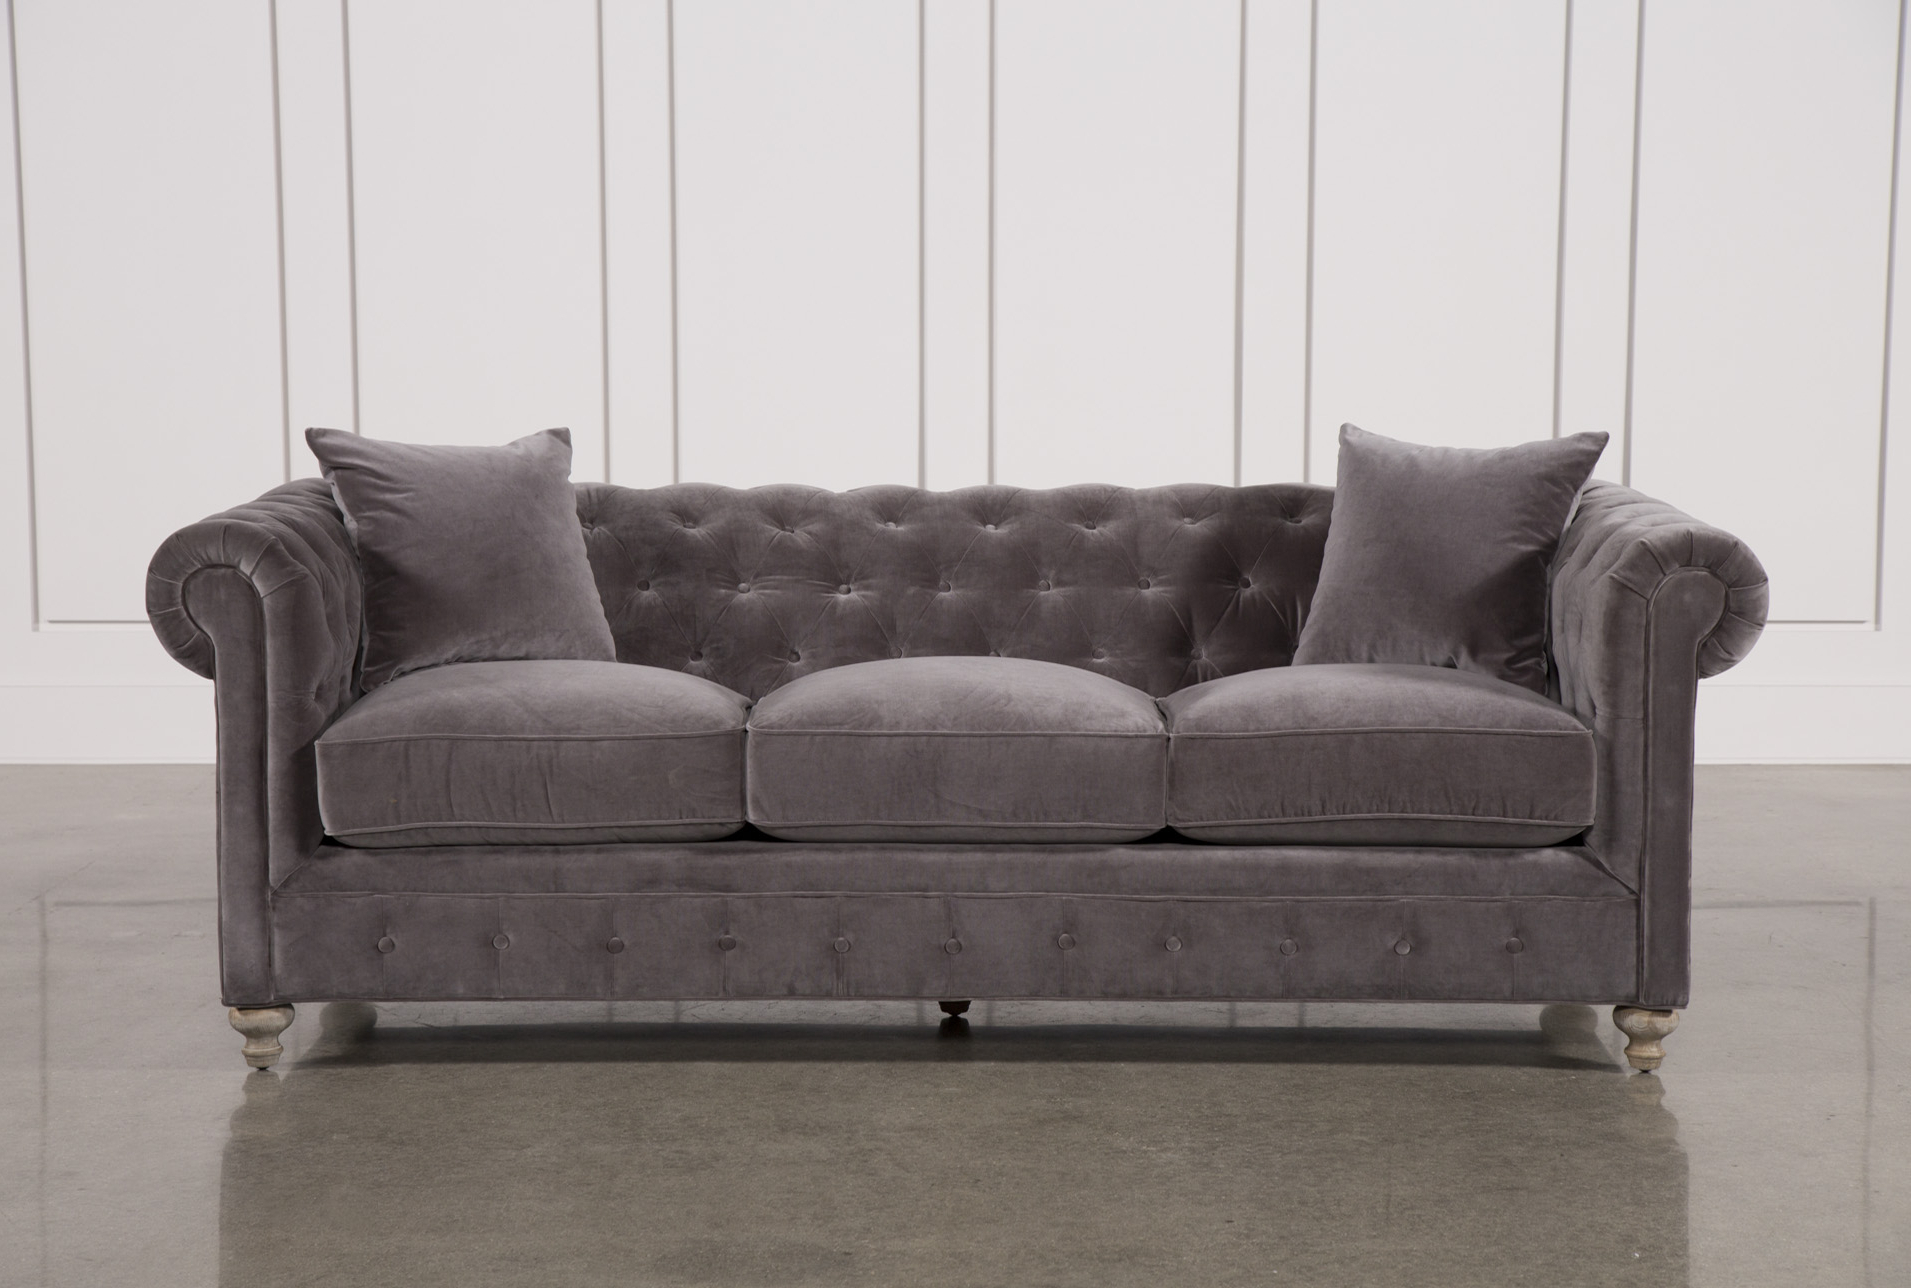 Mansfield Graphite Velvet Sofa Chairs For Most Recent Mansfield 96 Inch Graphite Velvet Sofa In  (View 11 of 20)